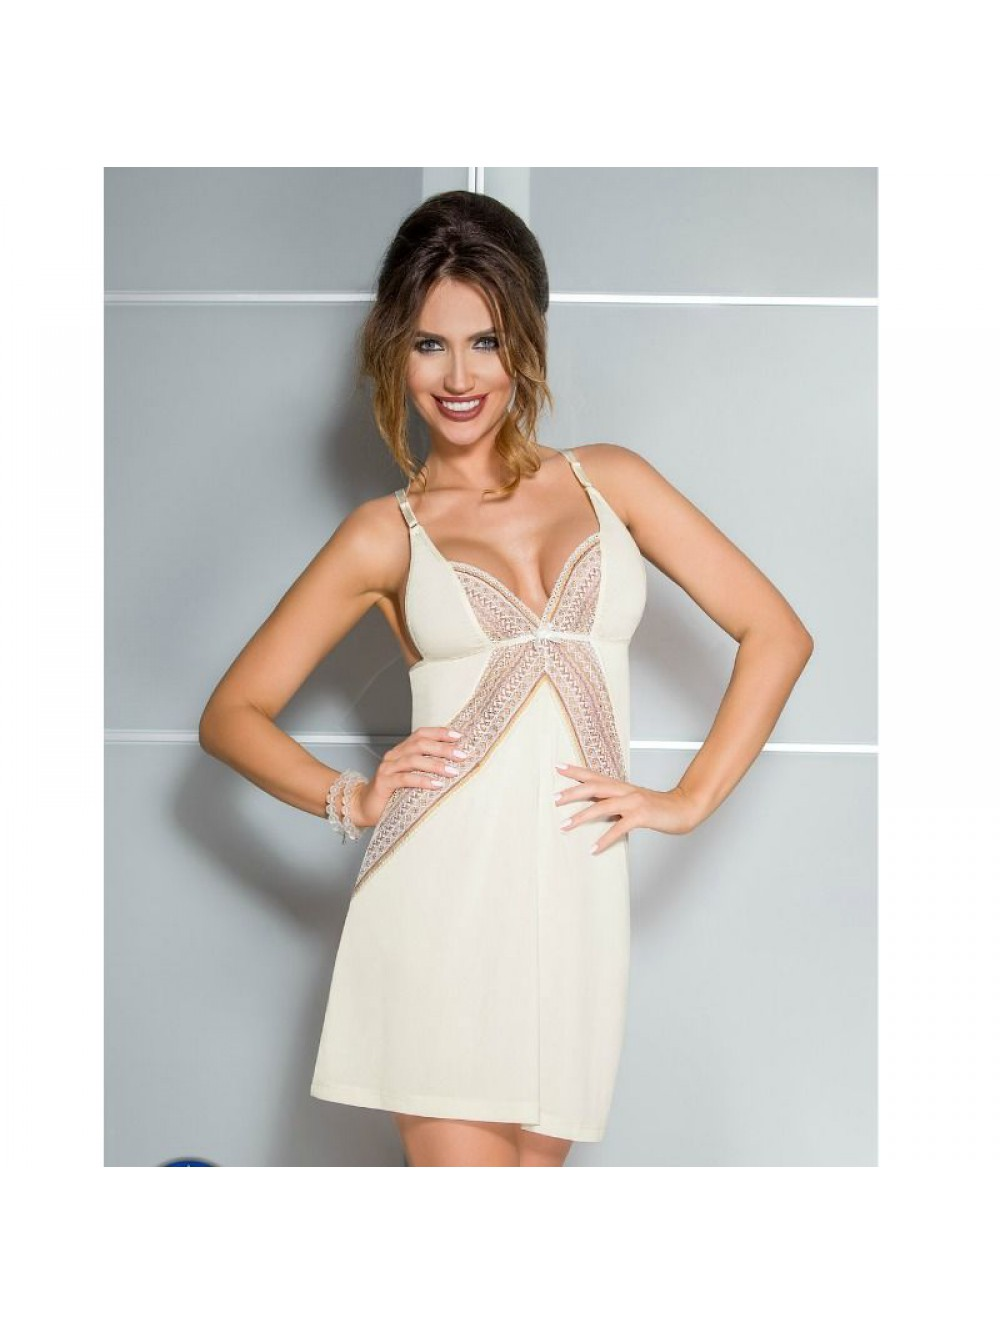 CONNIE CHEMISE CREAM COLOR SIZE S/M